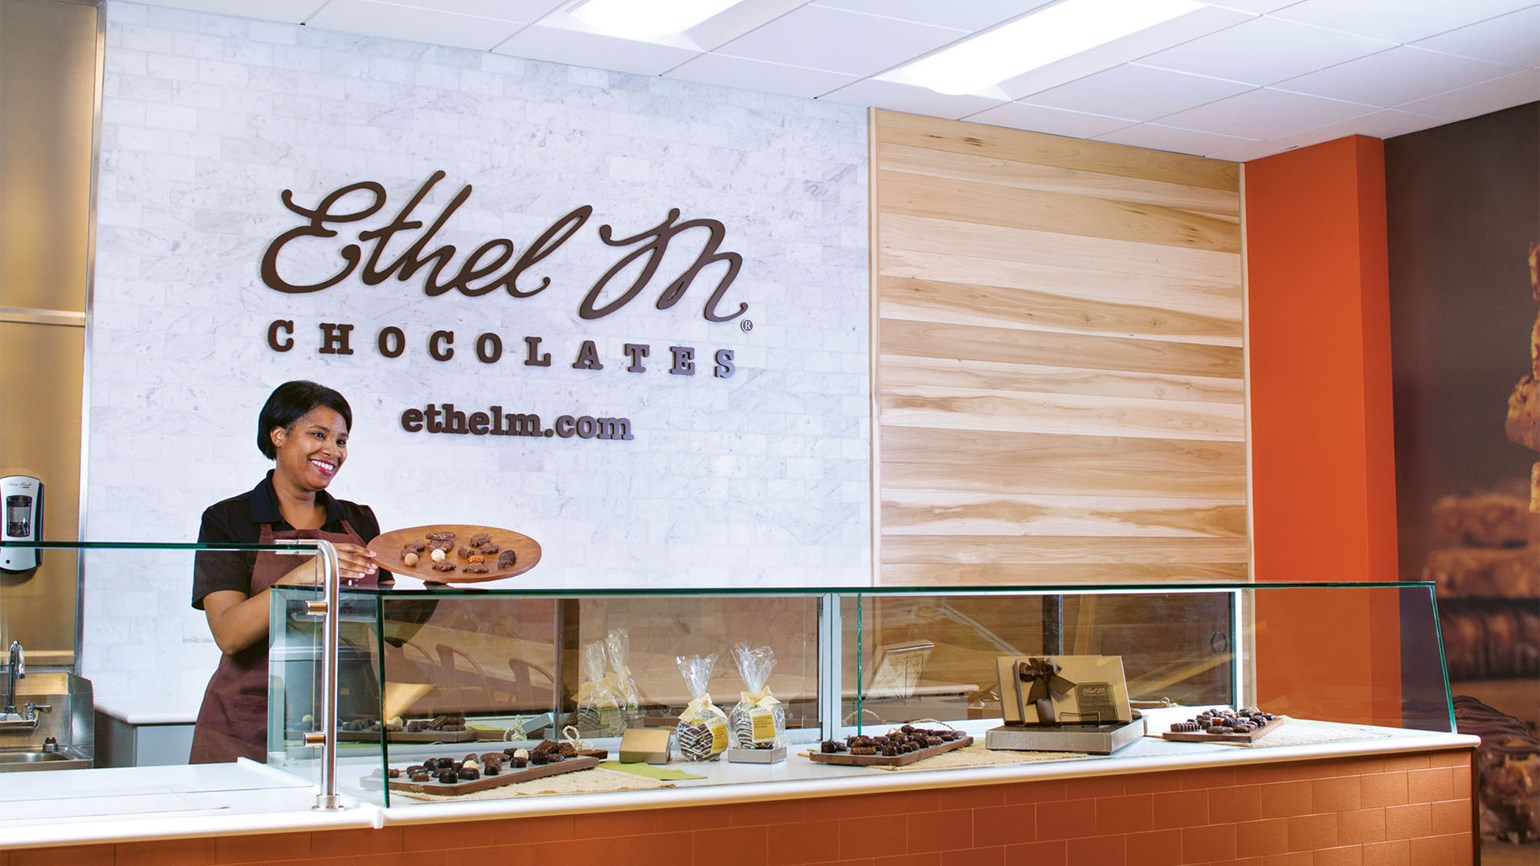 Tasty changes at Ethel M Chocolates: Travel Weekly